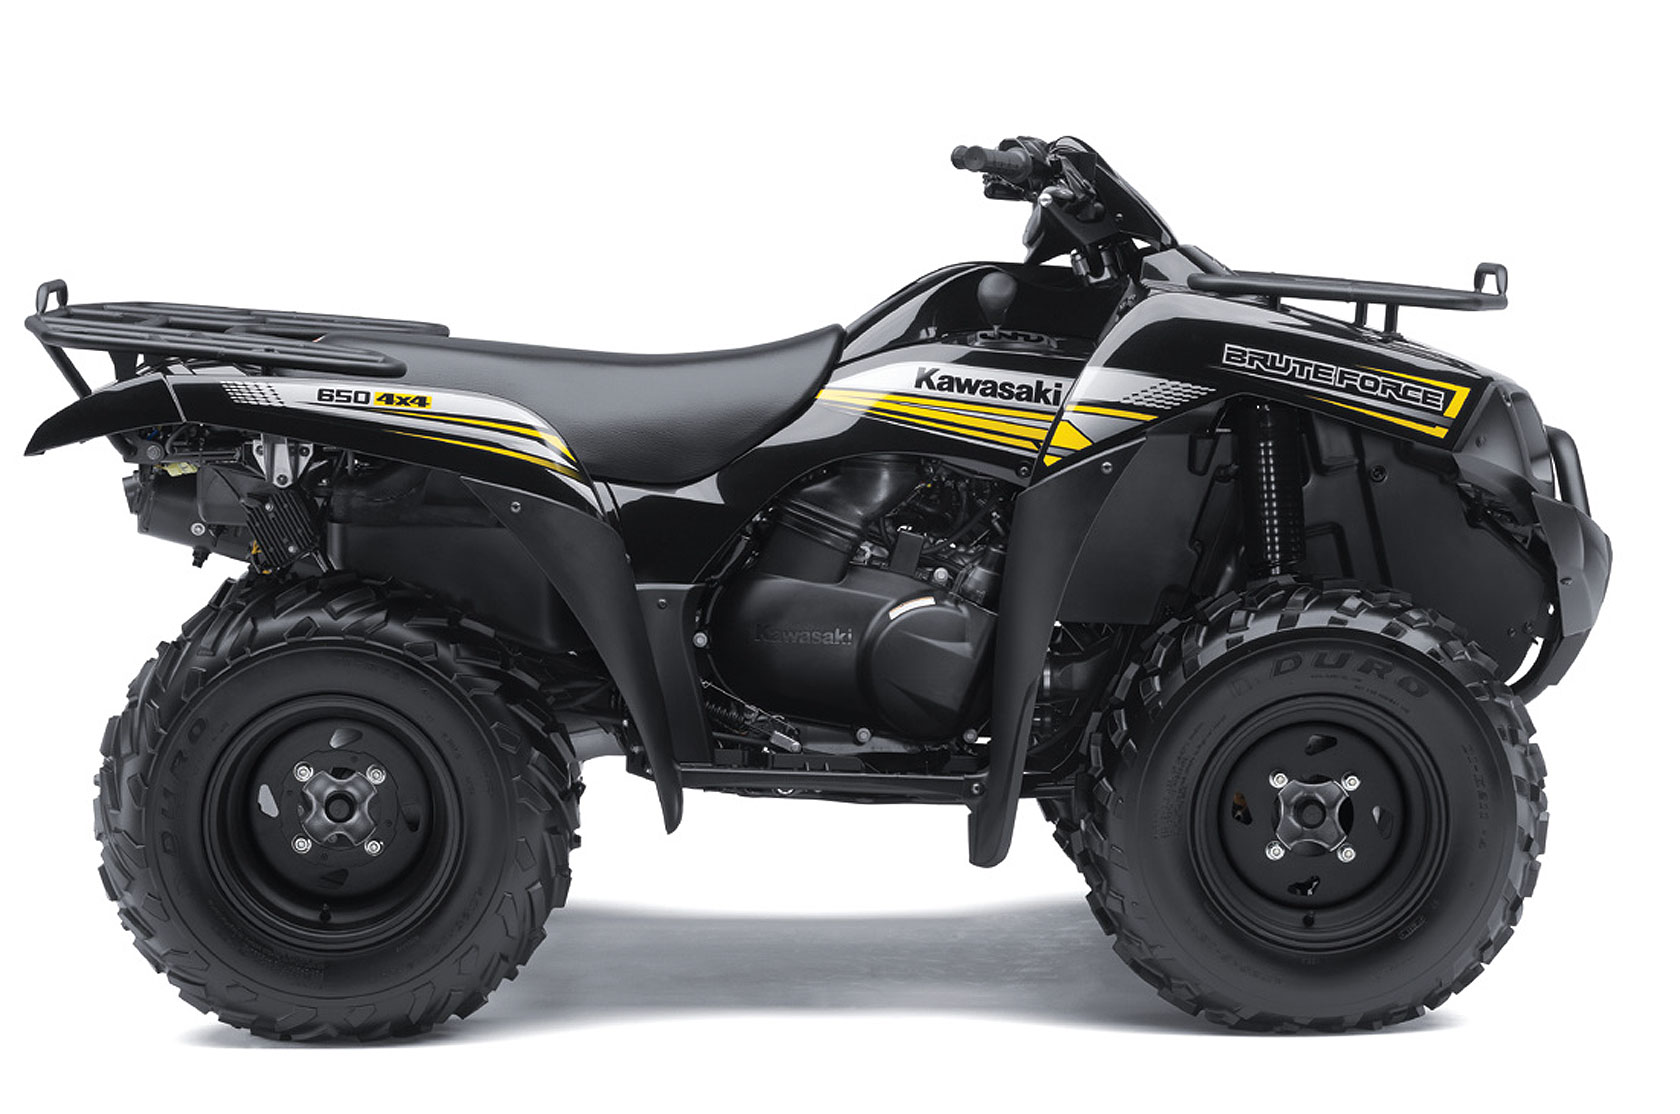 Kawasaki Brute Force 650 4x4 2011 images #86179